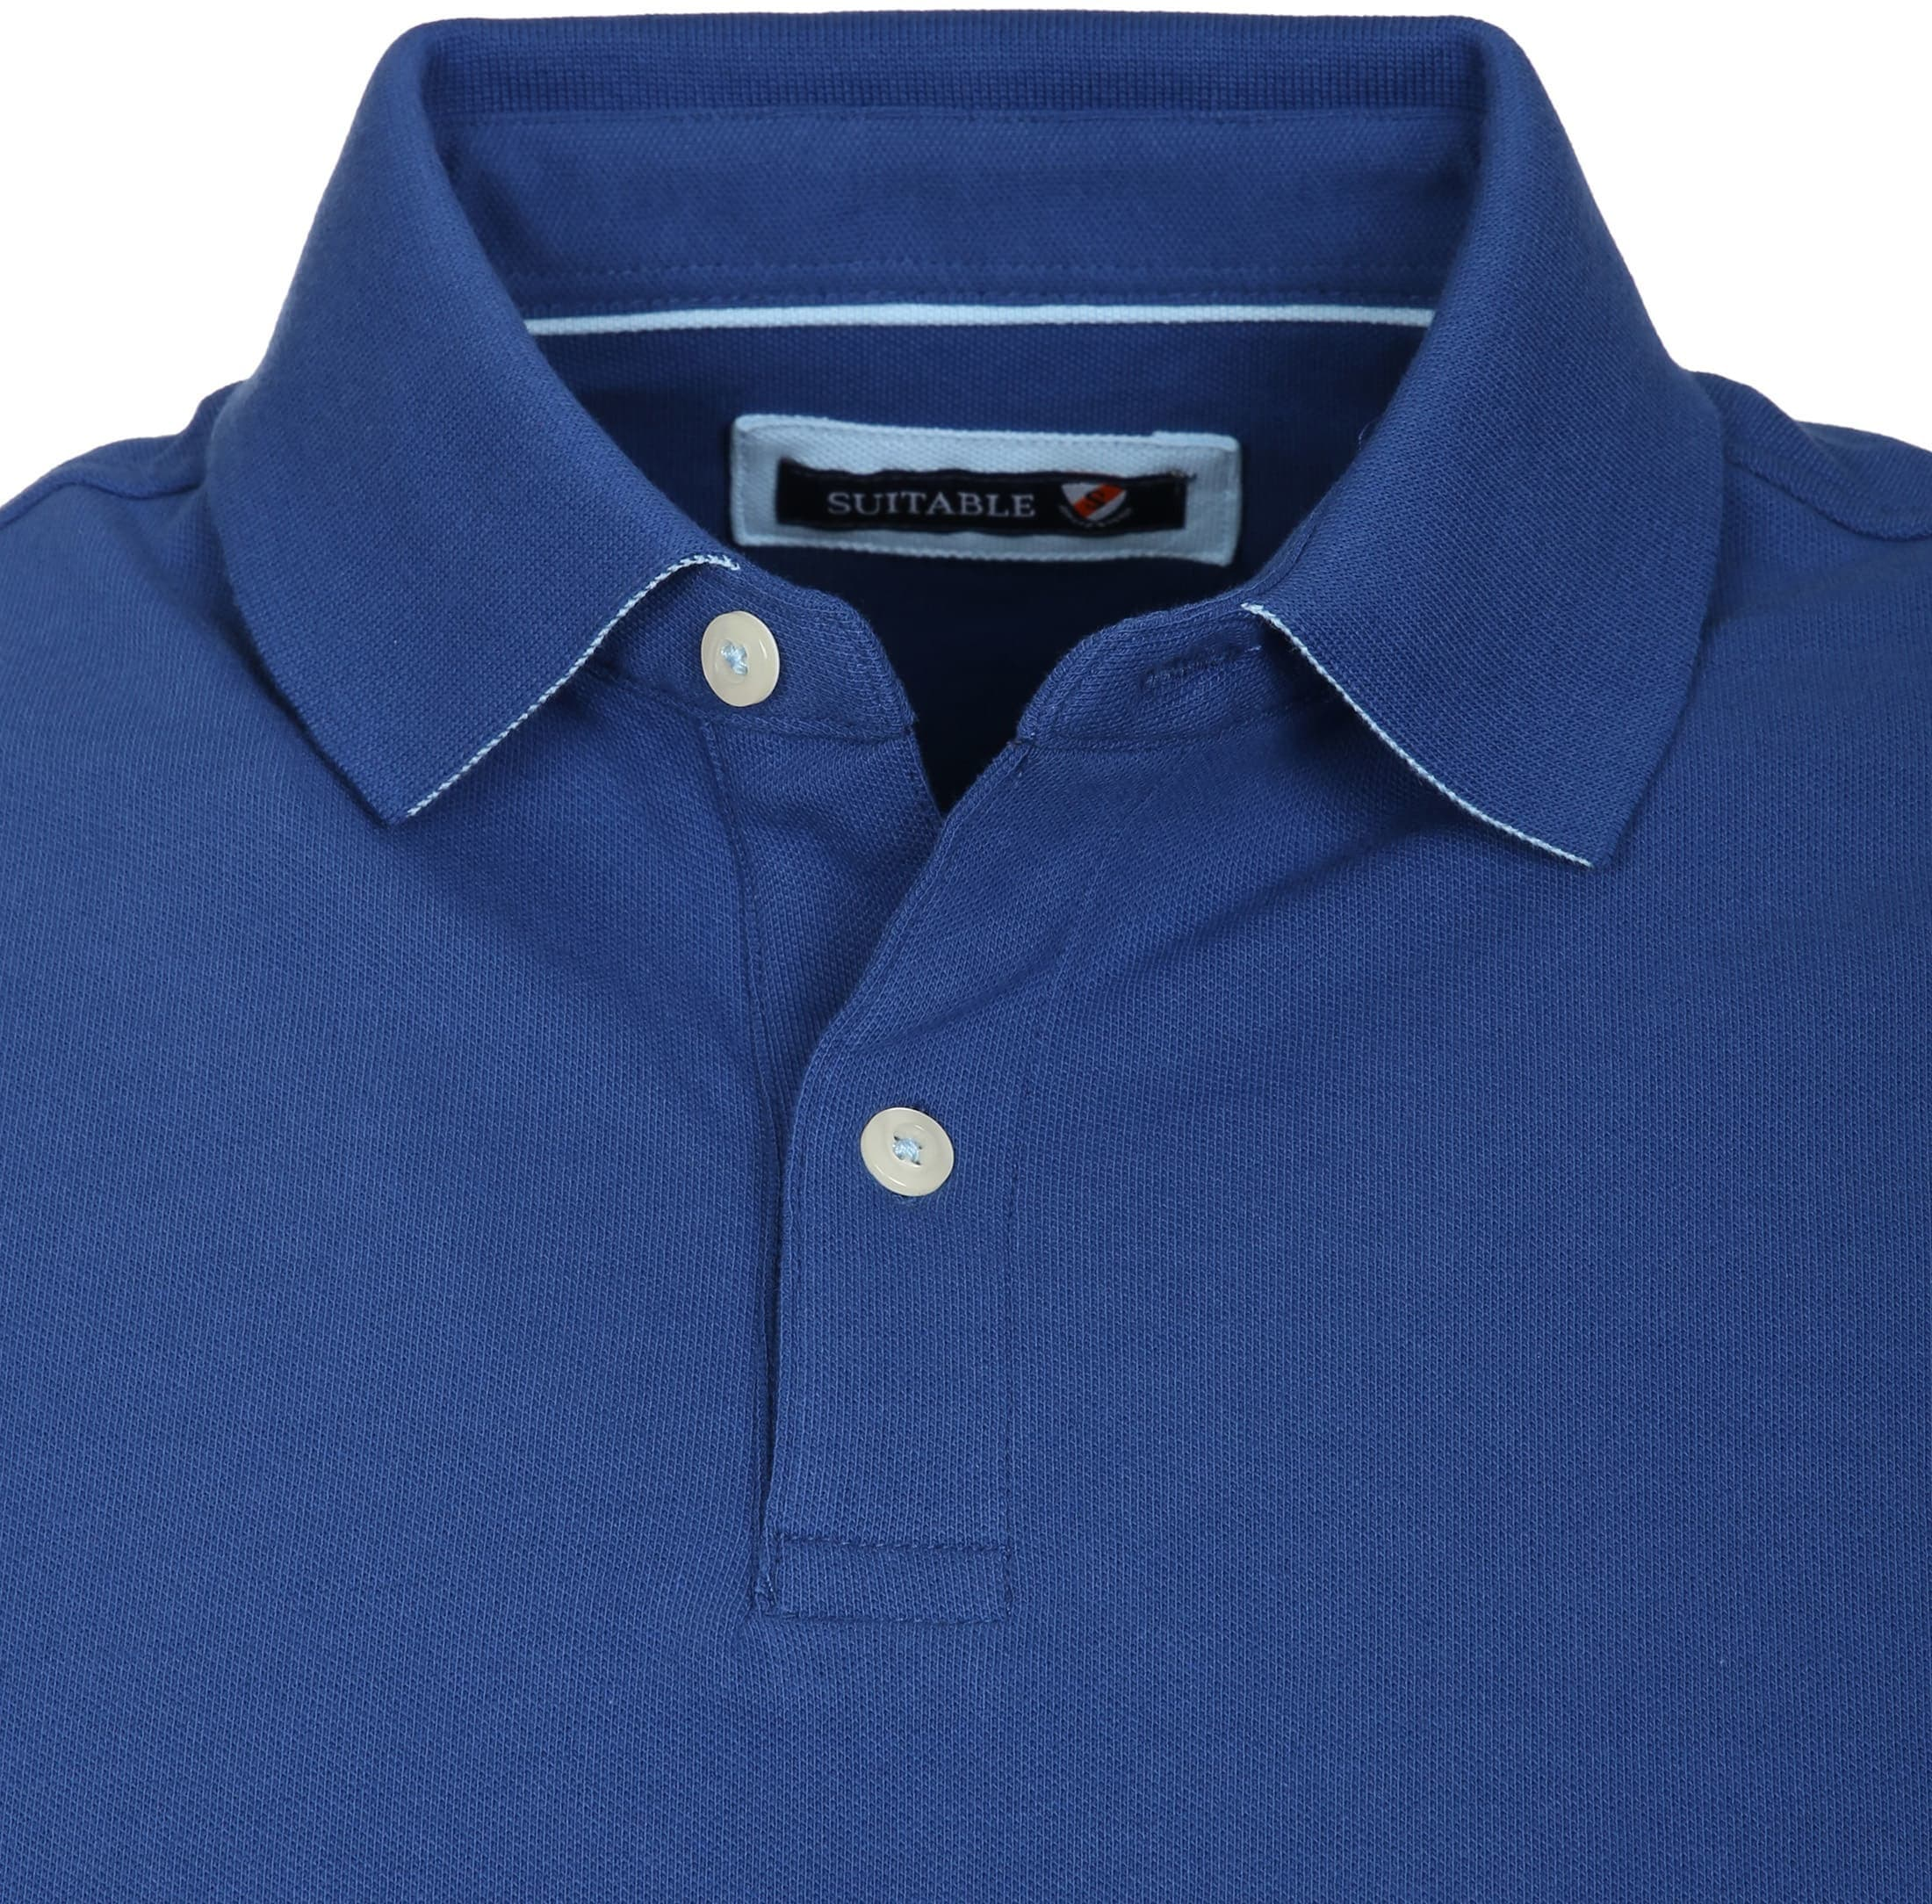 Suitable Poloshirt Basic Royal Blau foto 1